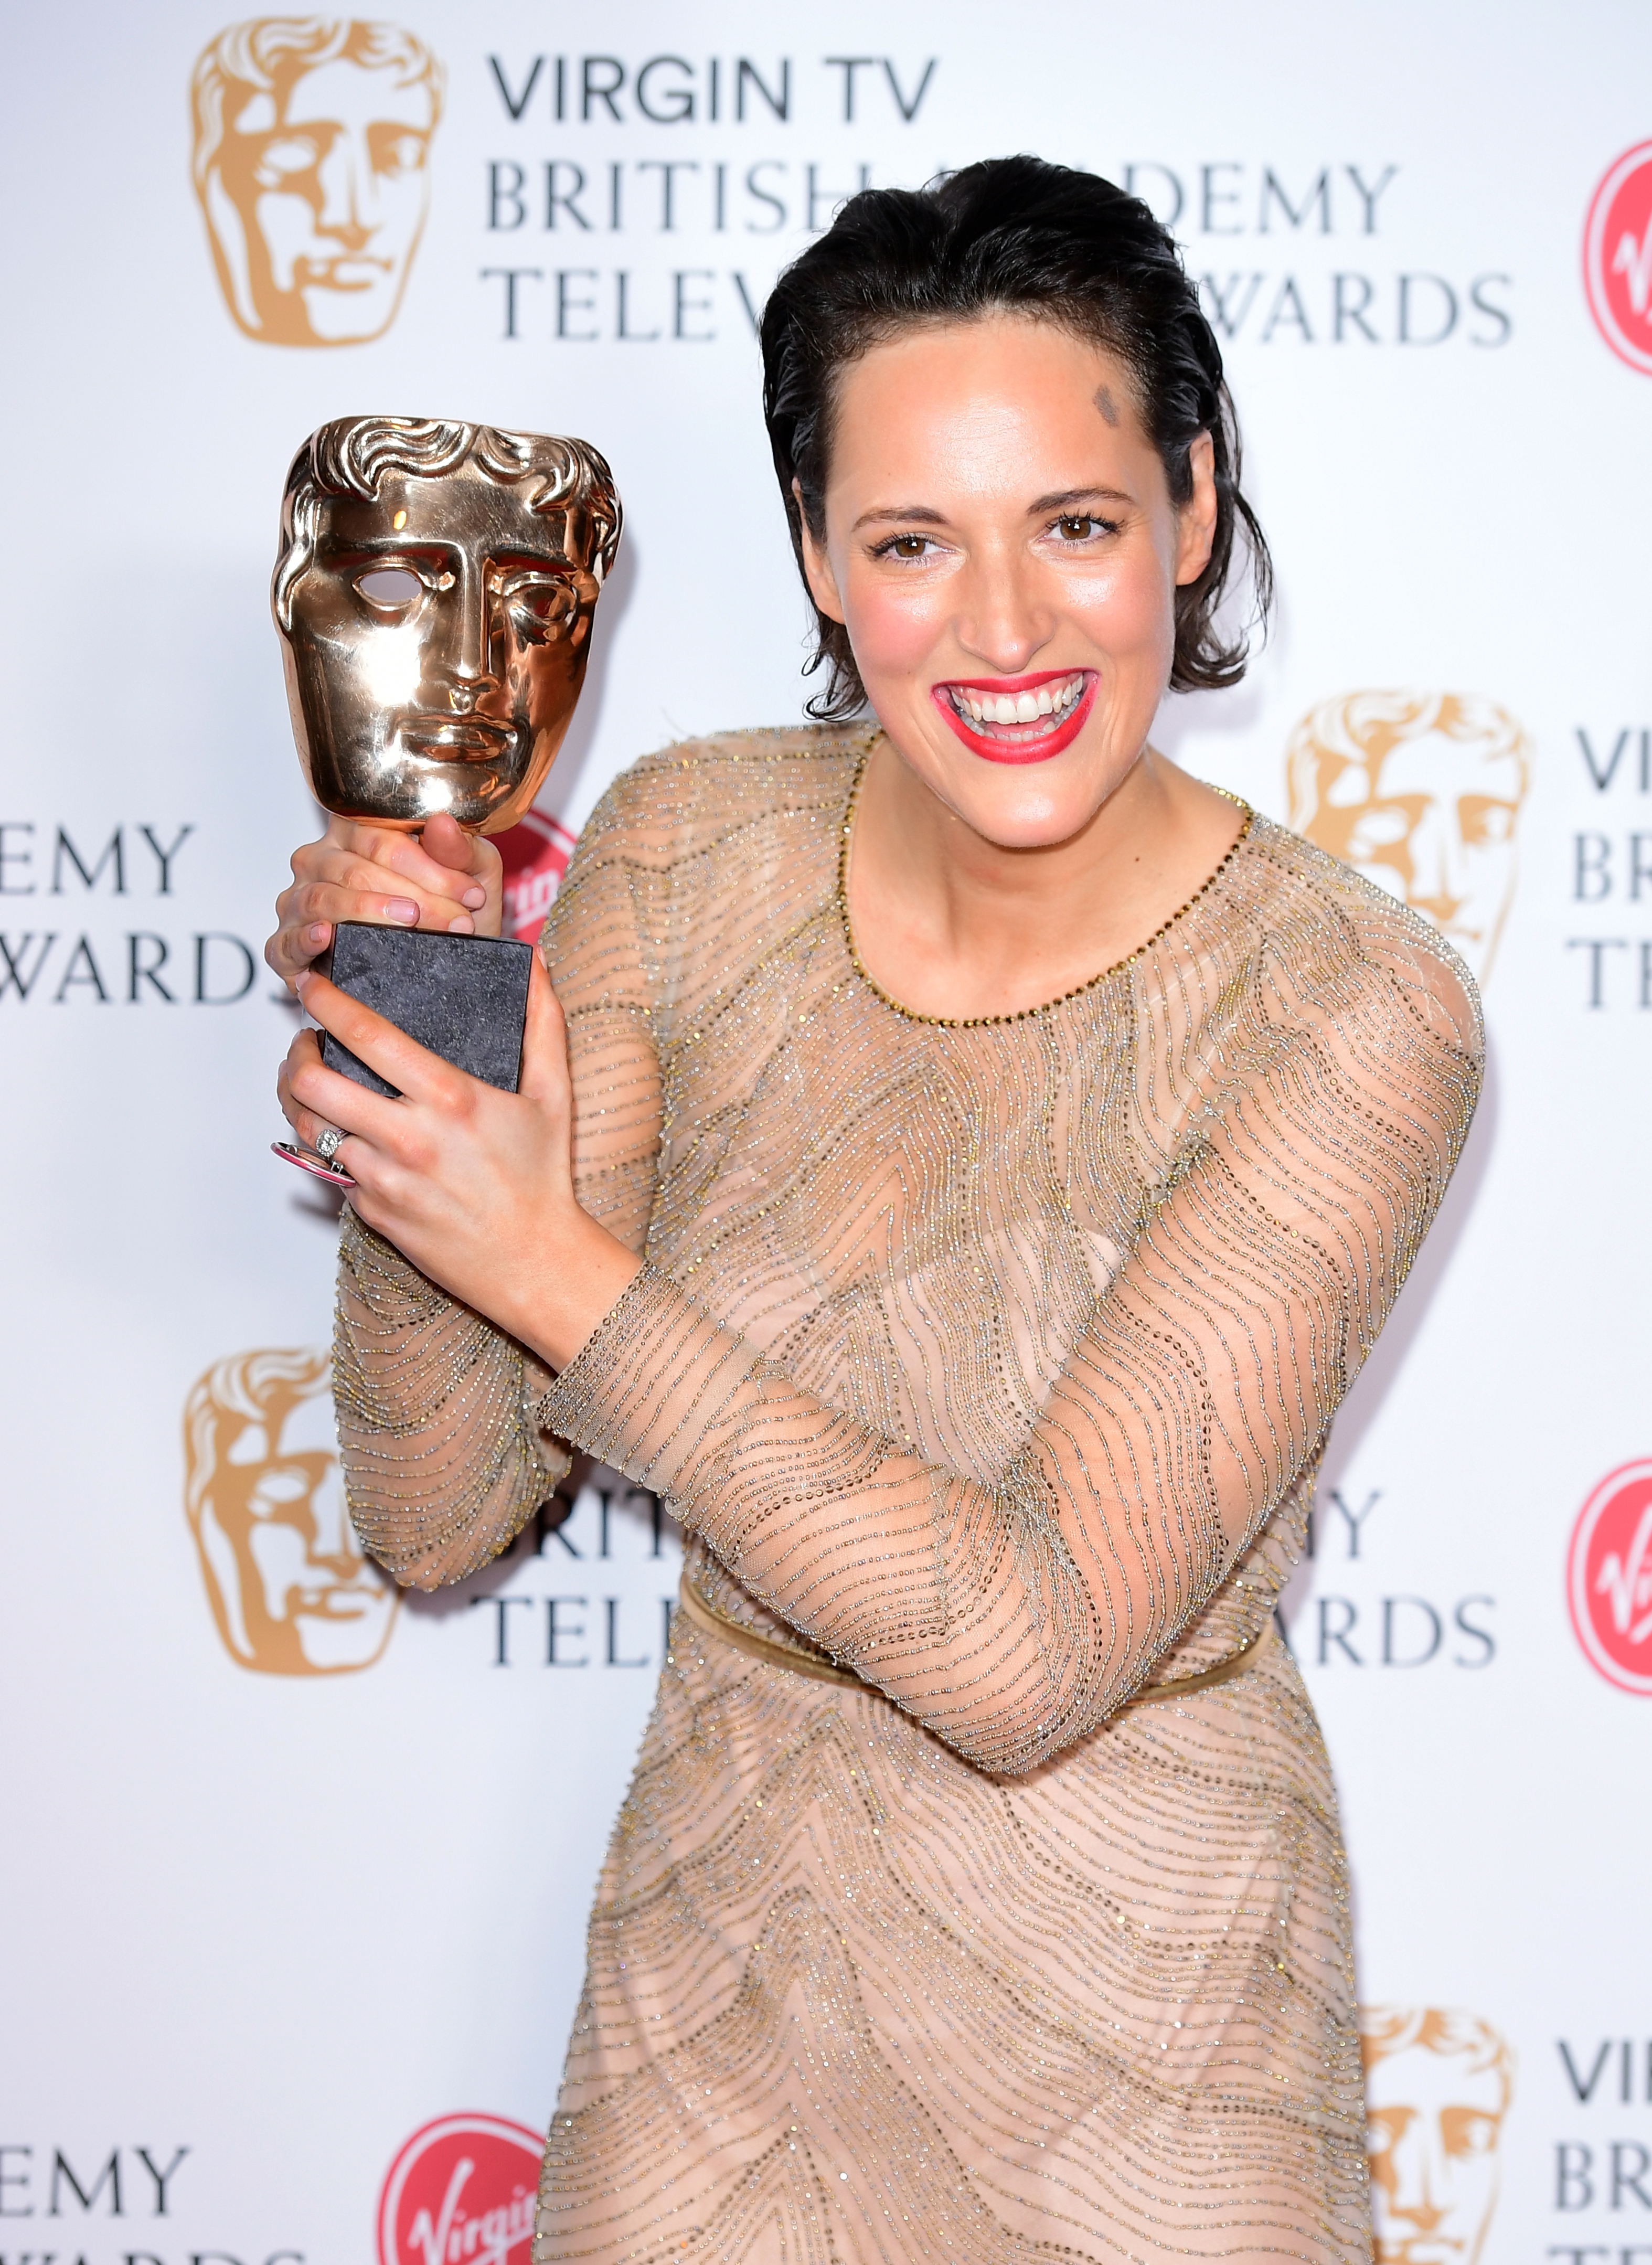 Phoebe Waller-Bridge with the award for Best Female Performance in a Comedy Programme in the press room at the Virgin TV British Academy Television Awards